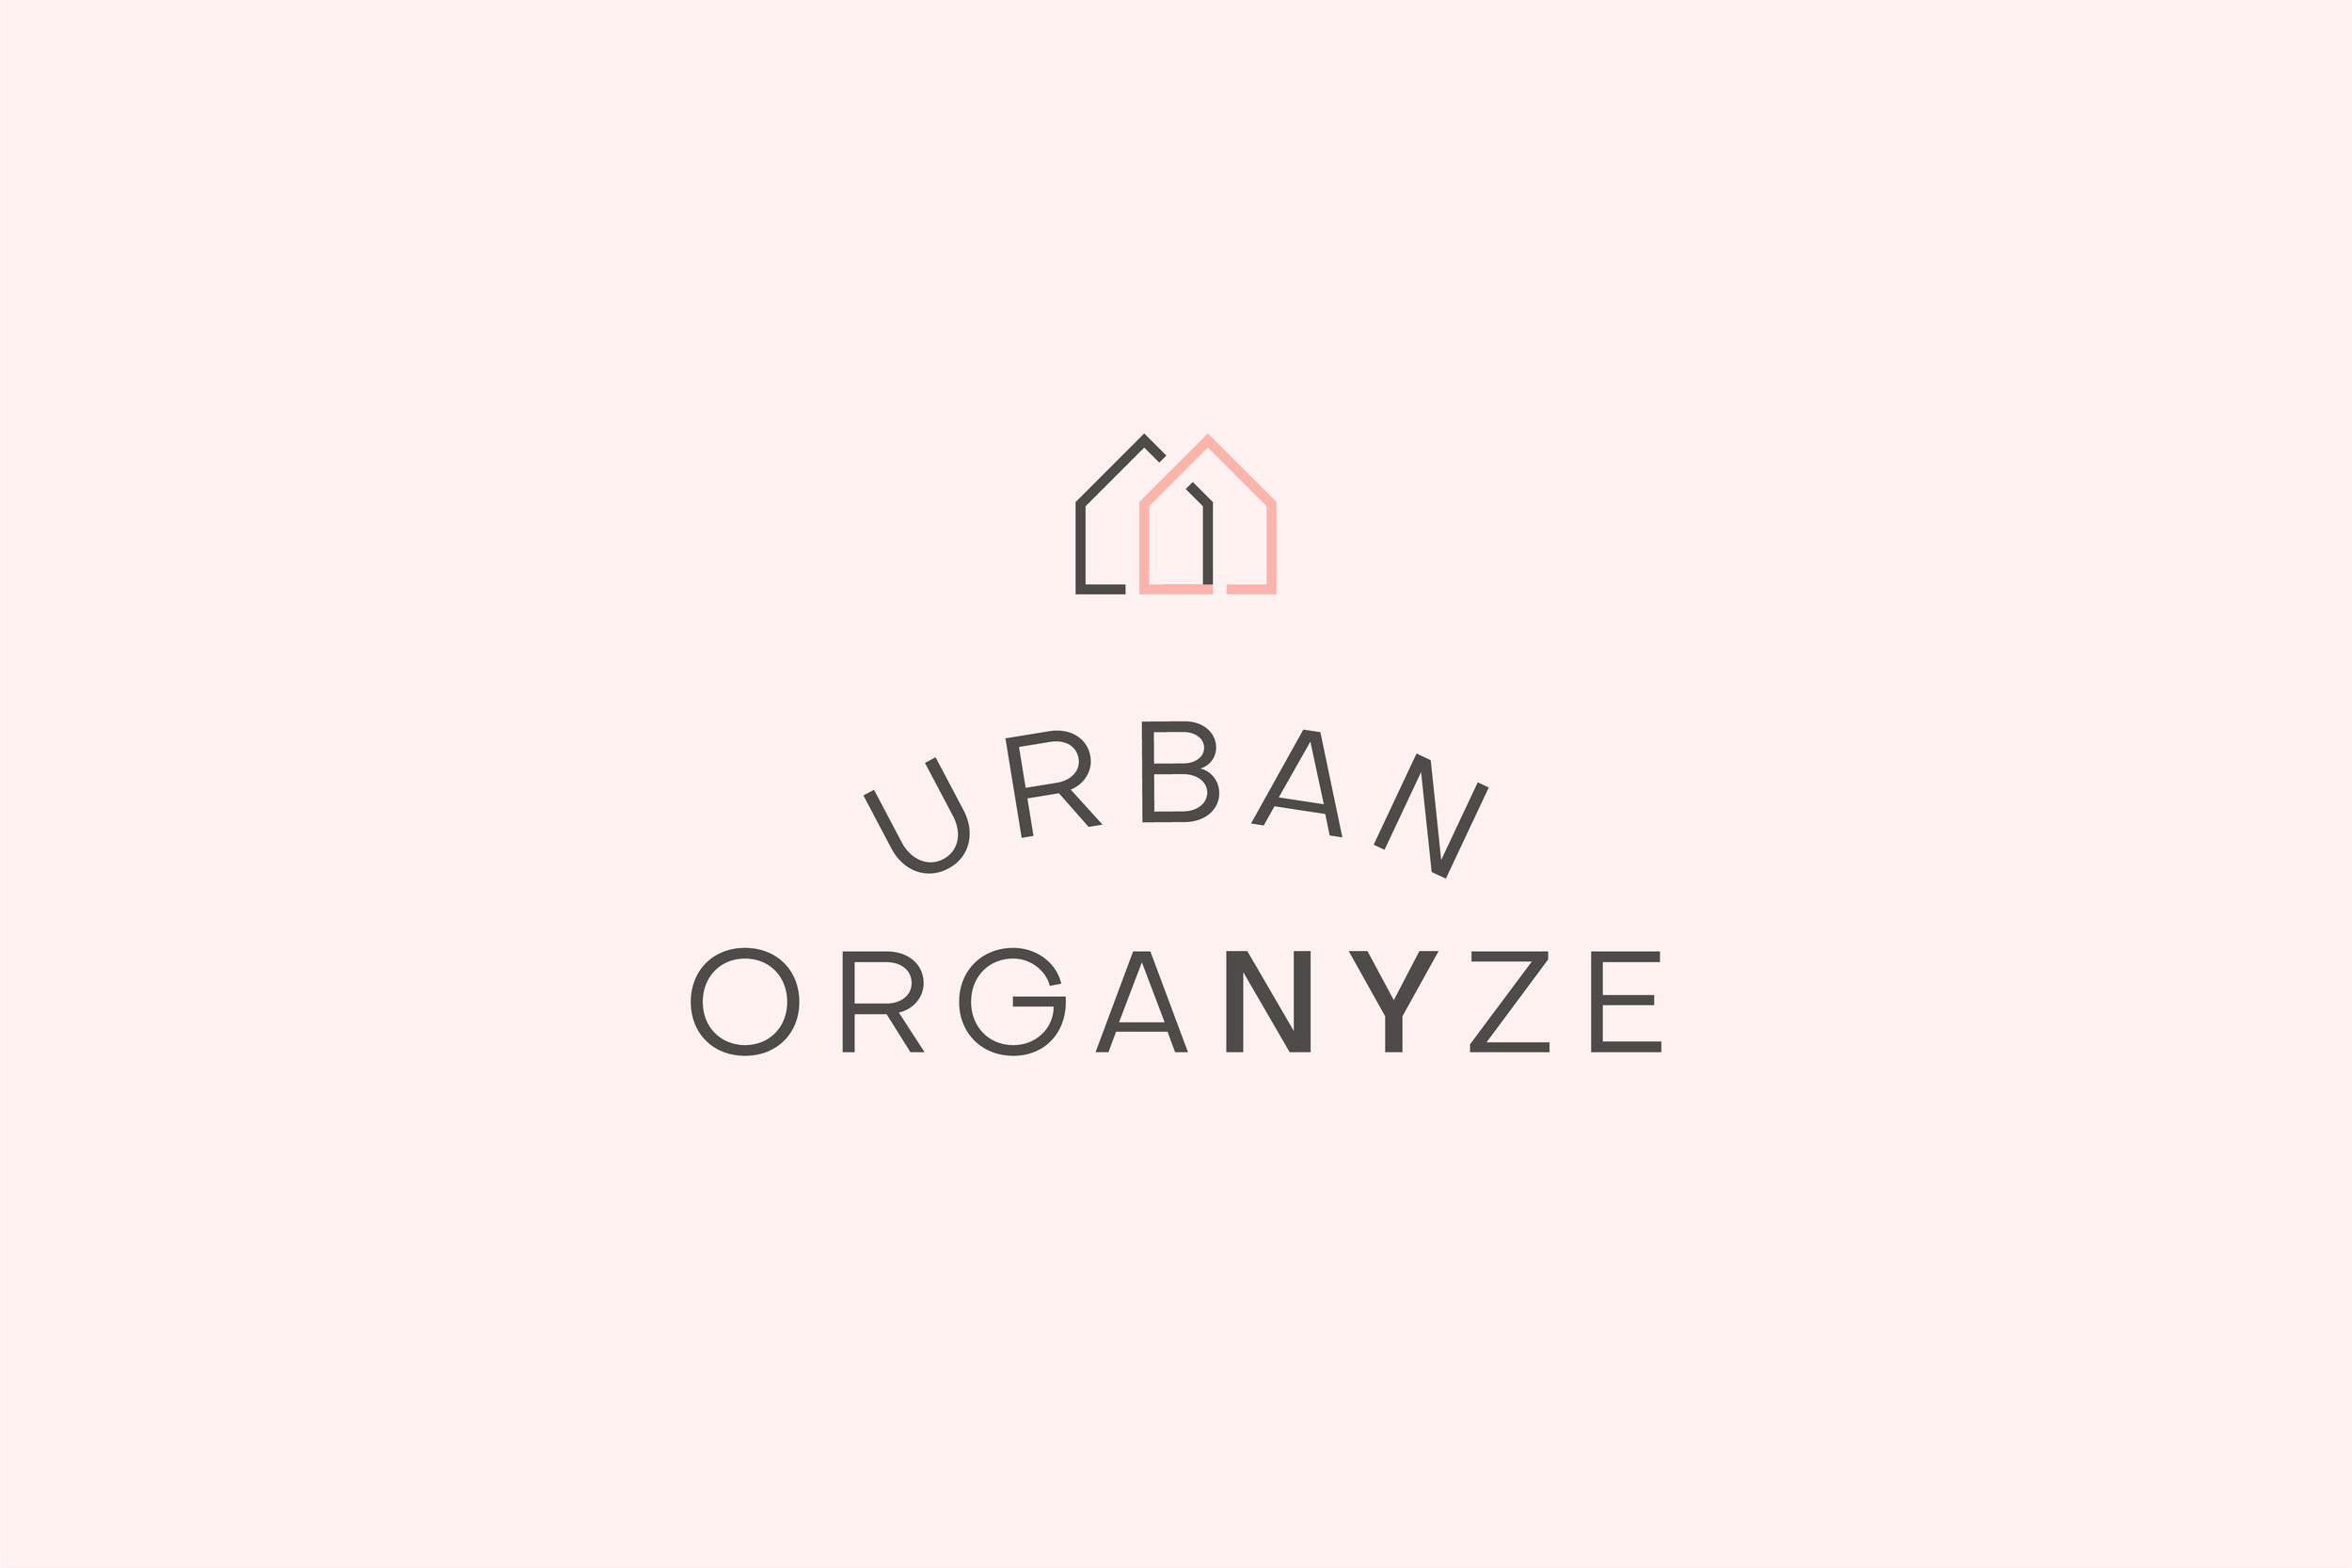 Branding & Website: Urban organyze